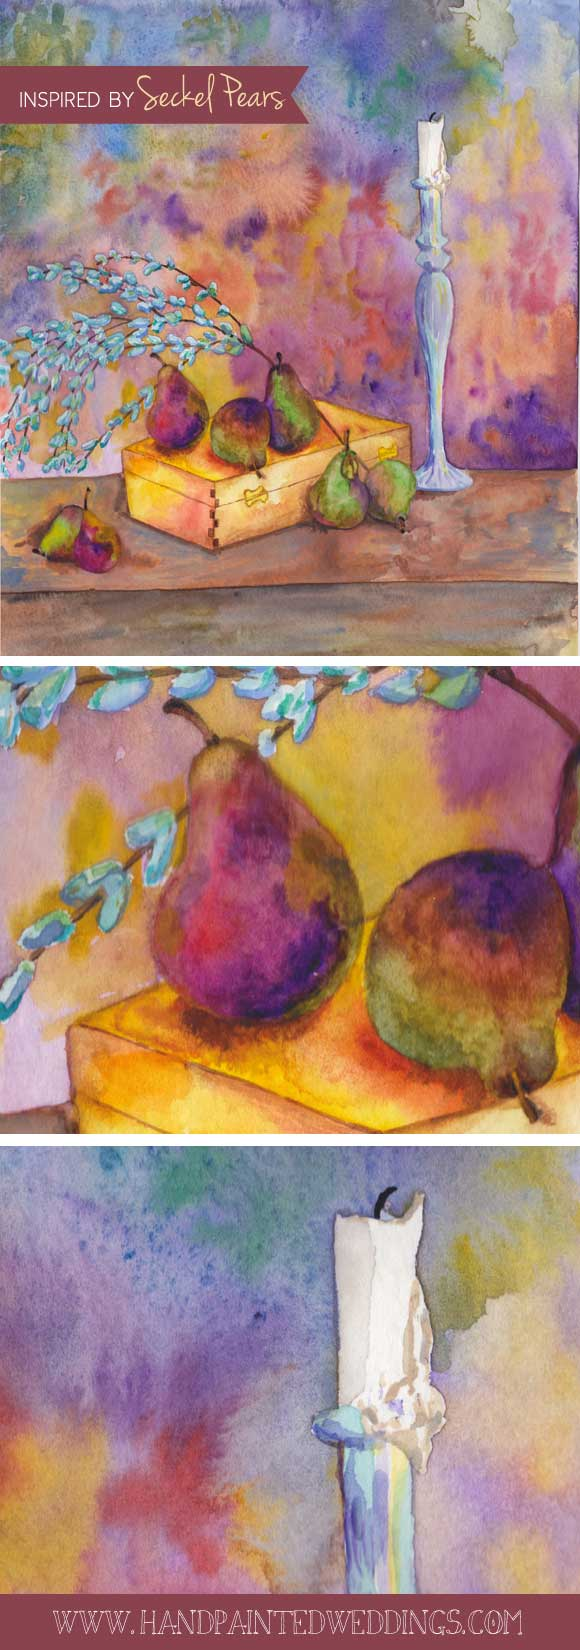 Work in Progress: Seckel Pear Still Life